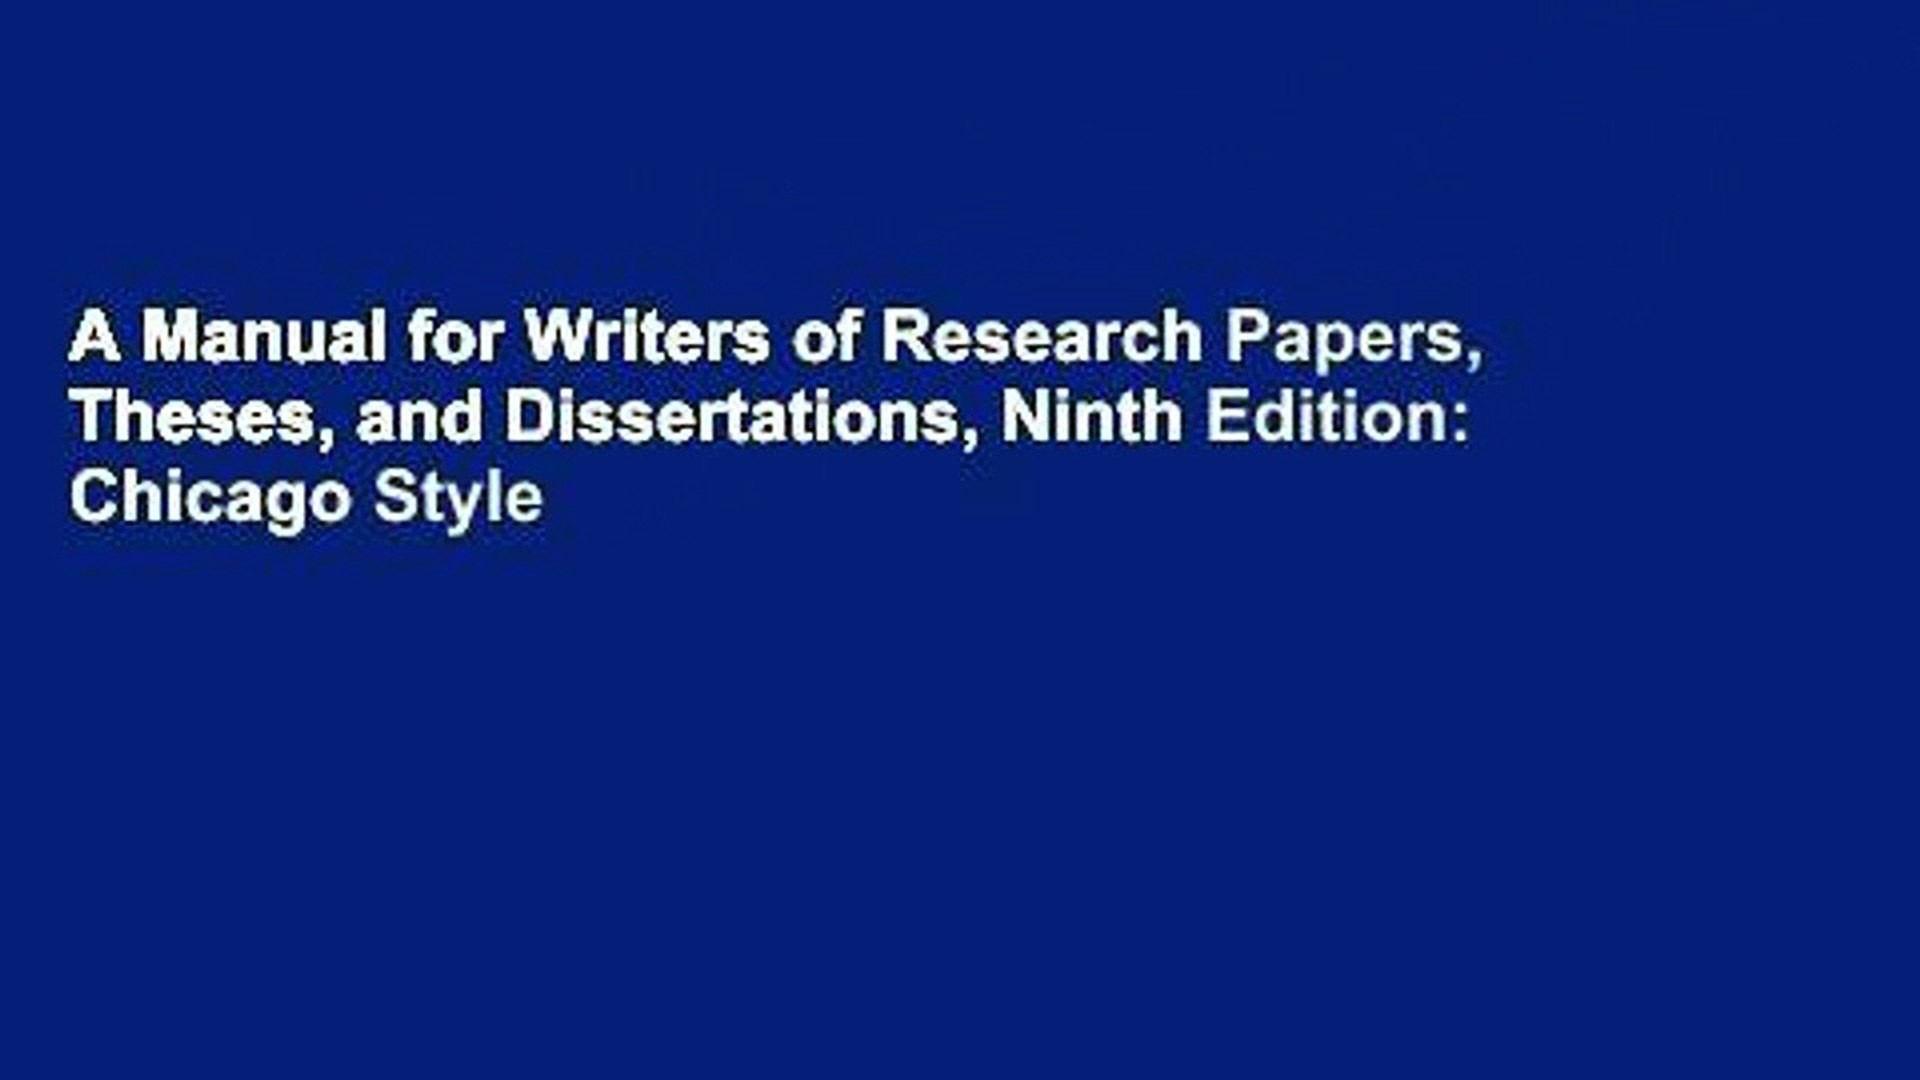 028 Manual For Writers Of Researchs Theses And Dissertations X1080 V4x Sensational A Research Papers Eighth Edition Pdf 9th 8th 1920